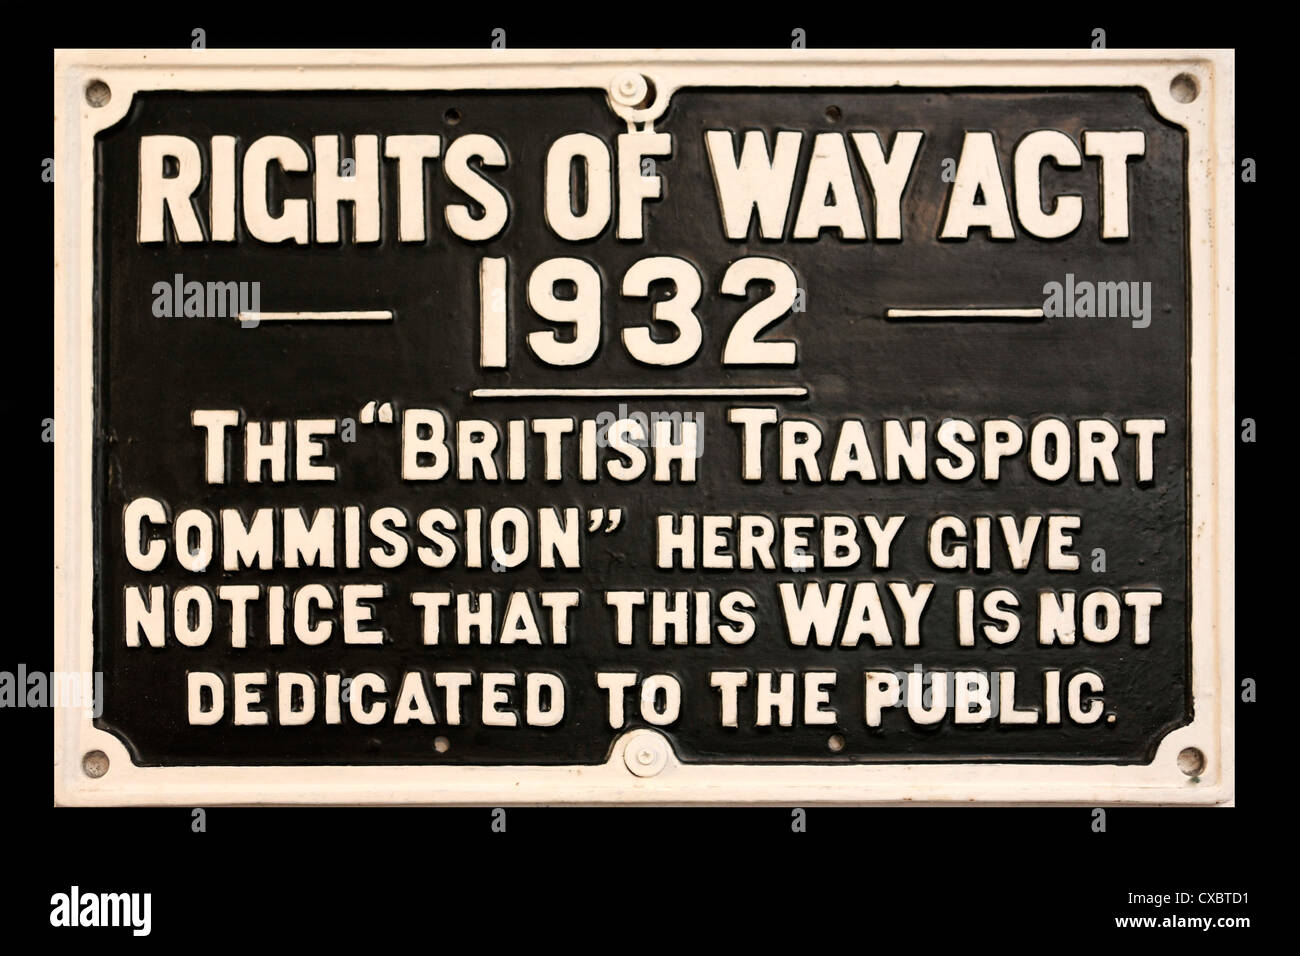 Rights of Way Act of 1932 Vintage Railways sign - Stock Image